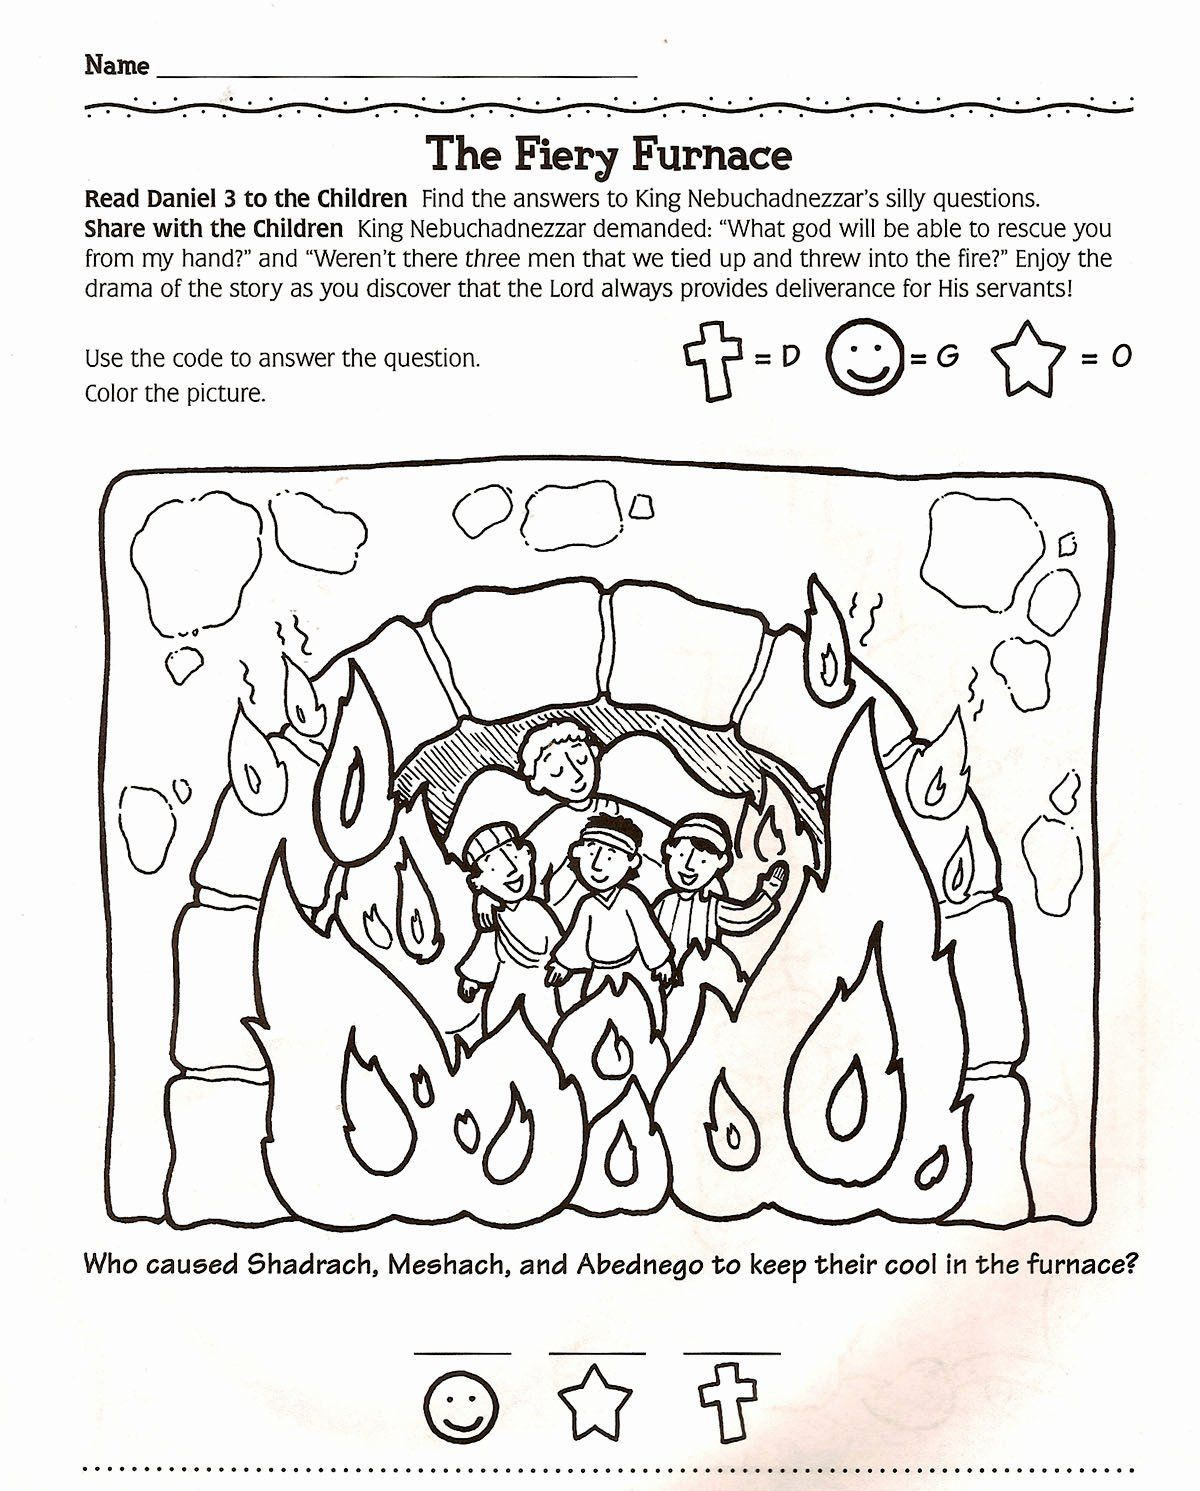 Shadrach Meshach And Abednego Coloring Page Fresh 1000 Images